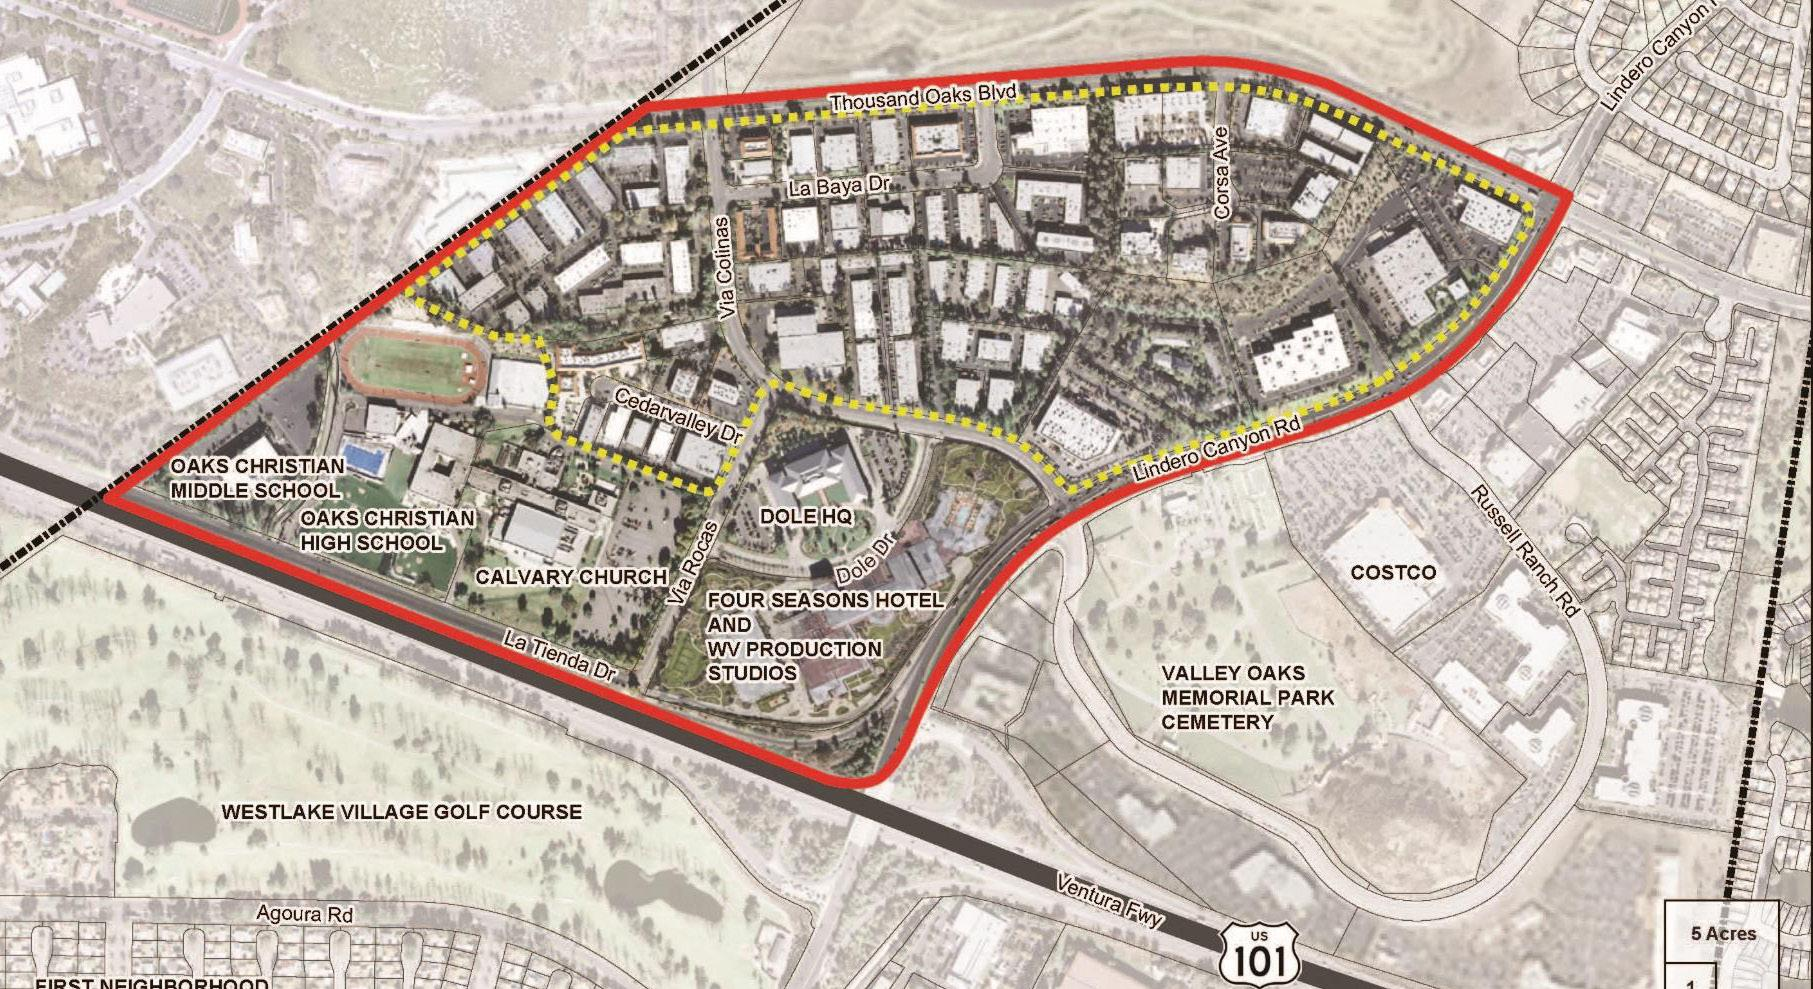 Page 8 of NORTH BUSINESS PARK SPECIFIC PLAN